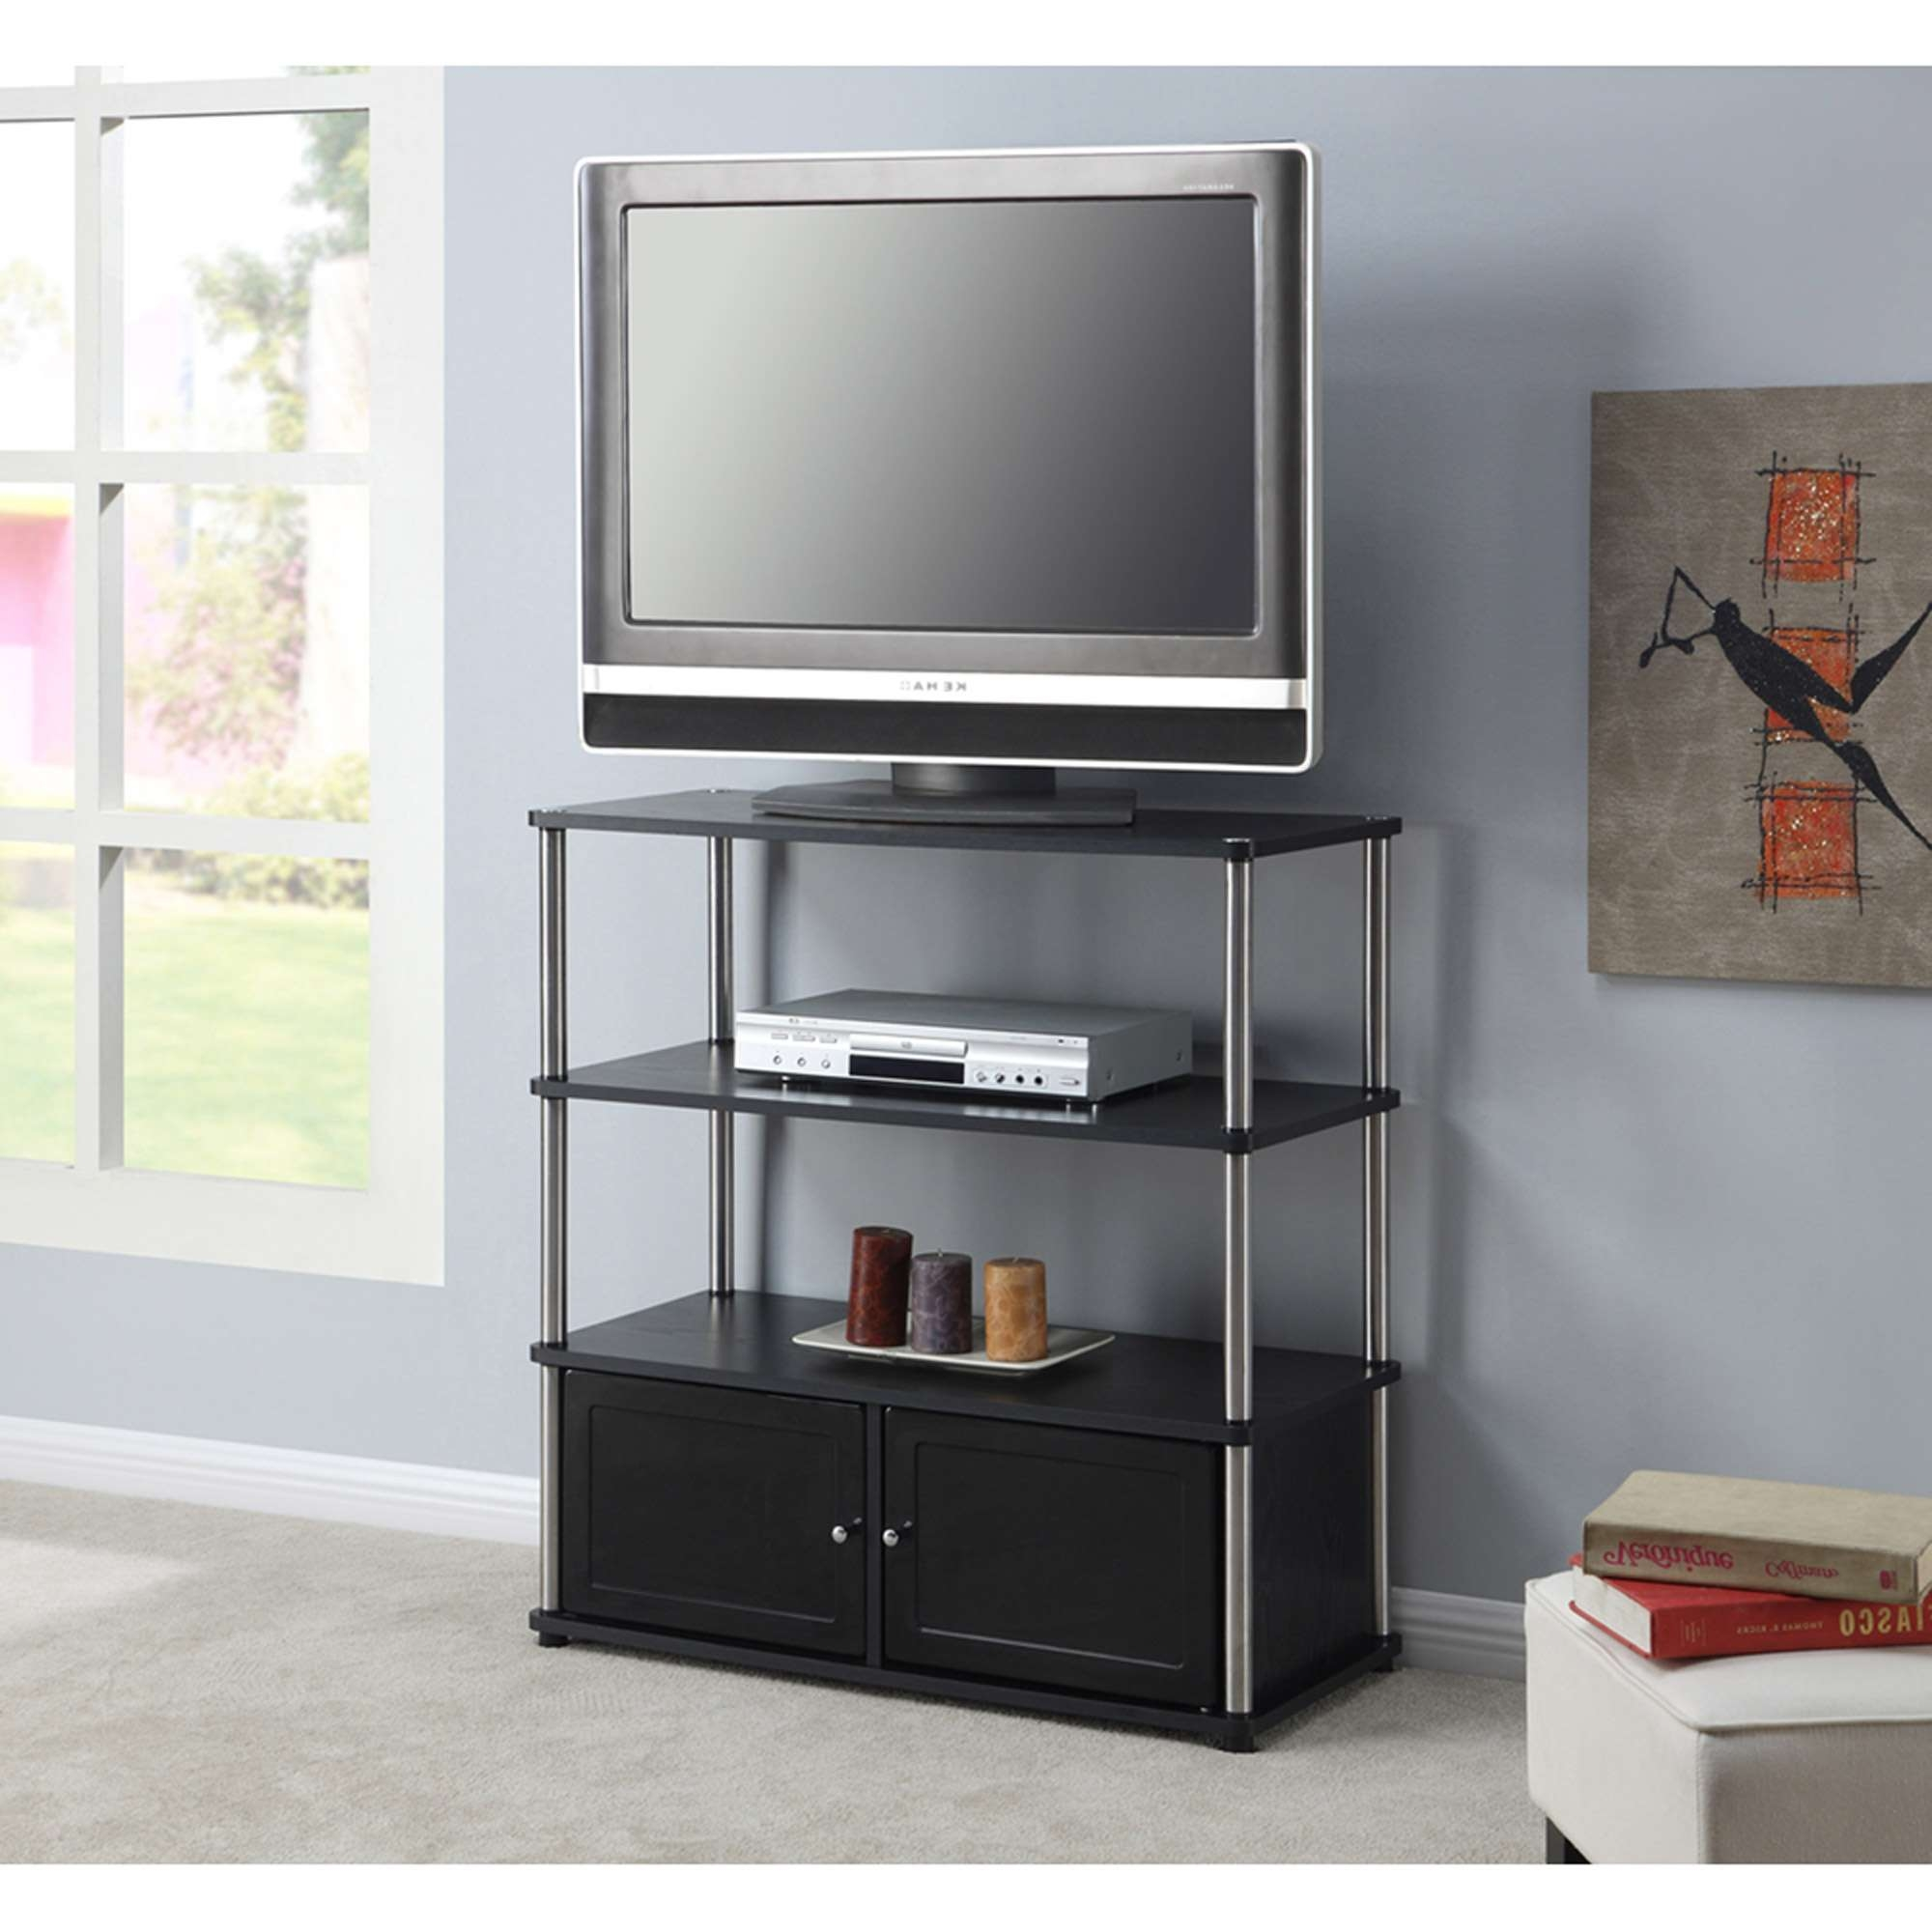 Tv Stand : 40 Stunning Small Black Tv Stand Photo Inspirations Inside Small Black Tv Cabinets (View 20 of 20)